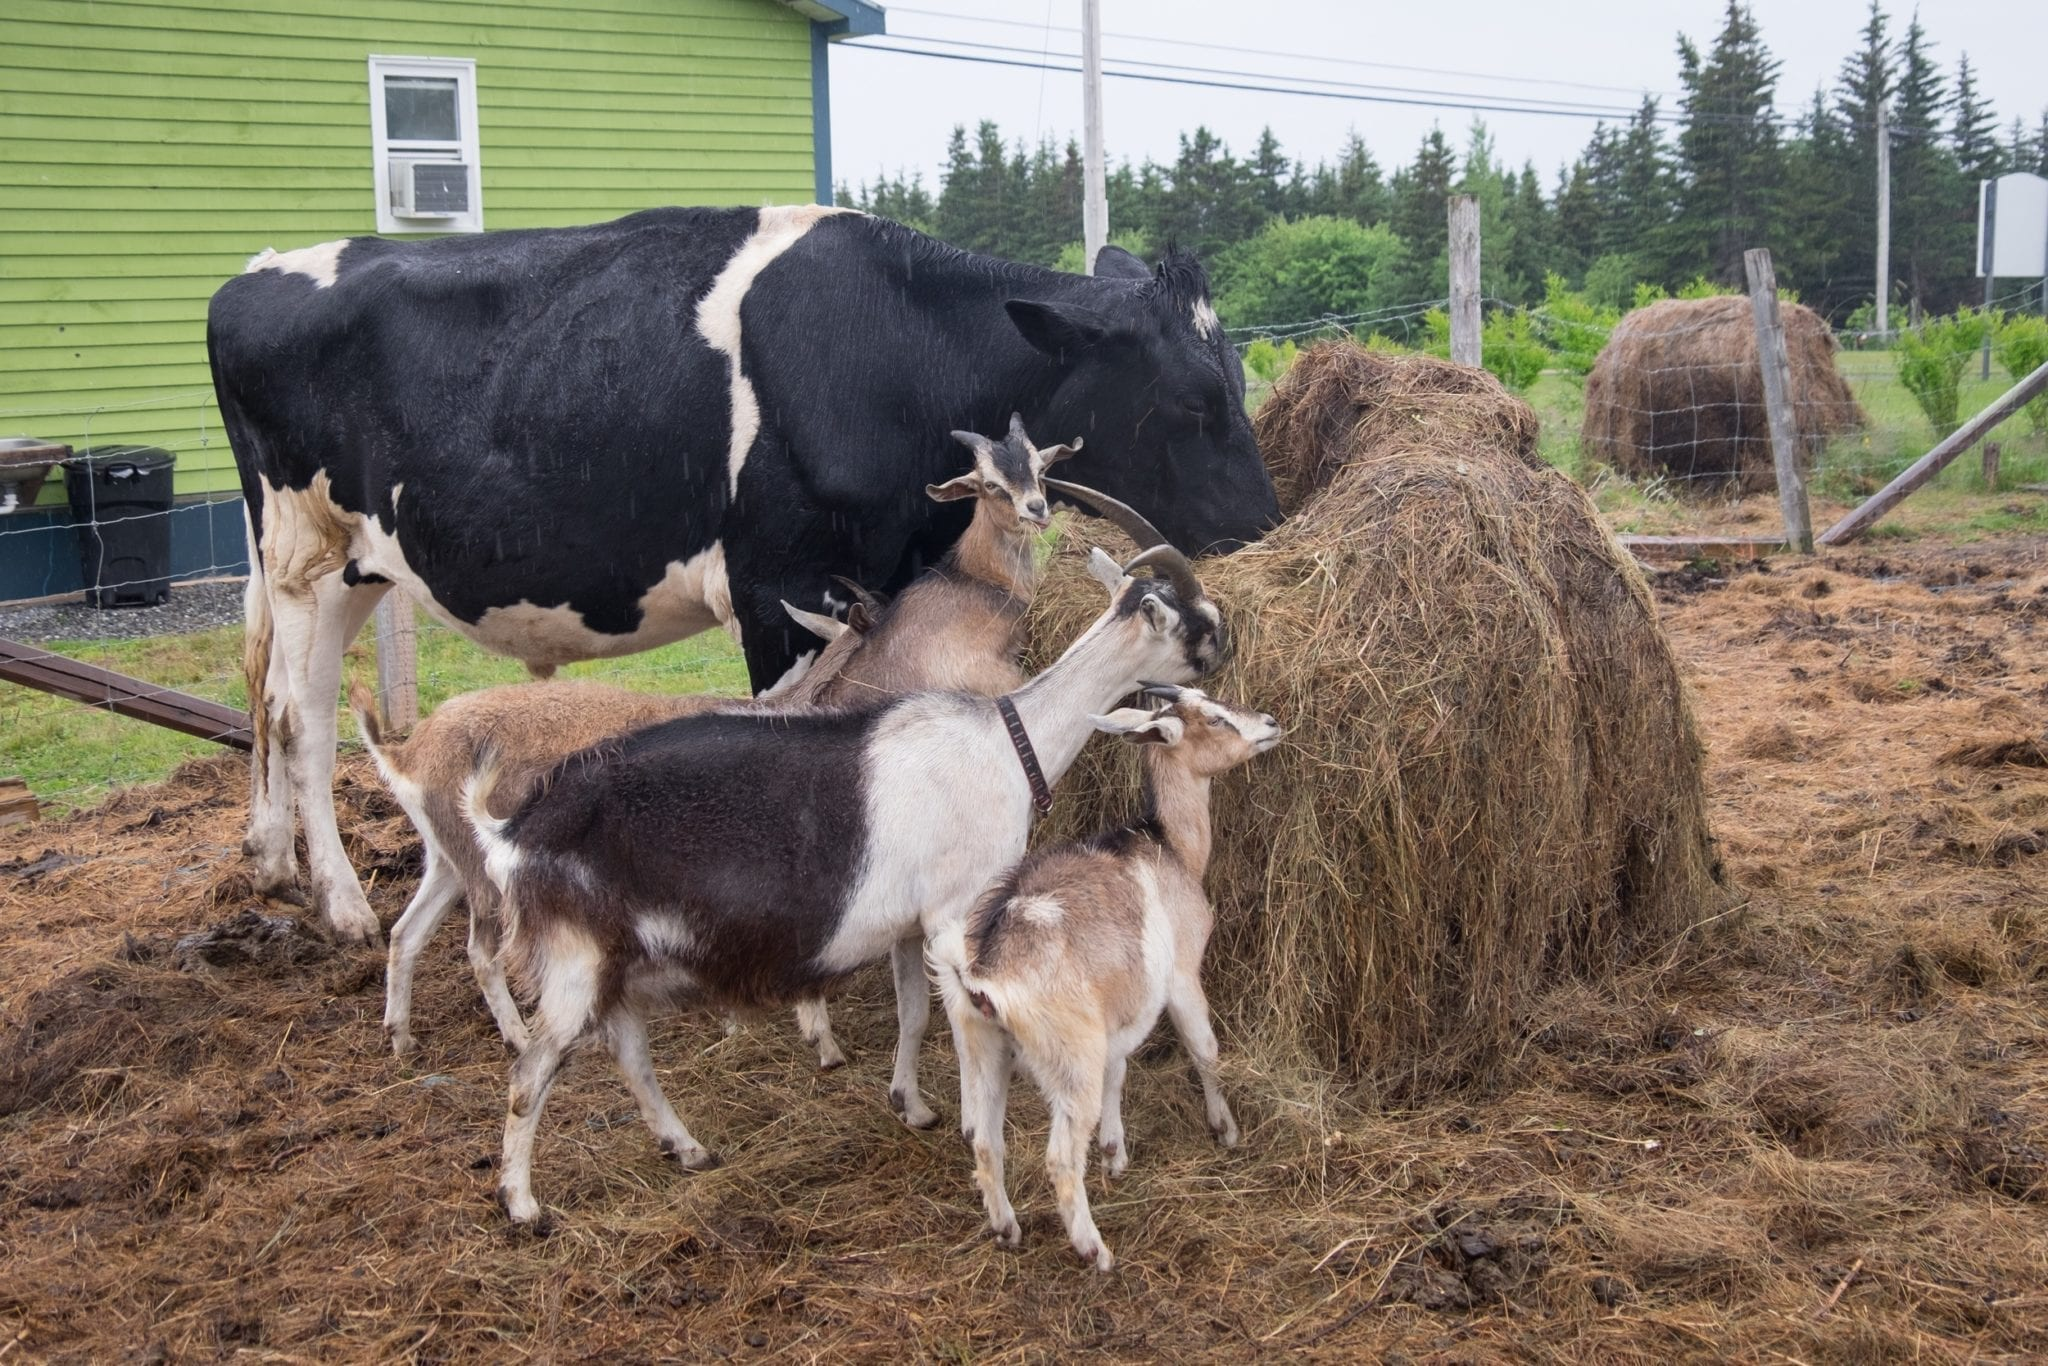 Several goats and a cow feeding on a bale of hay together in Cape Breton.